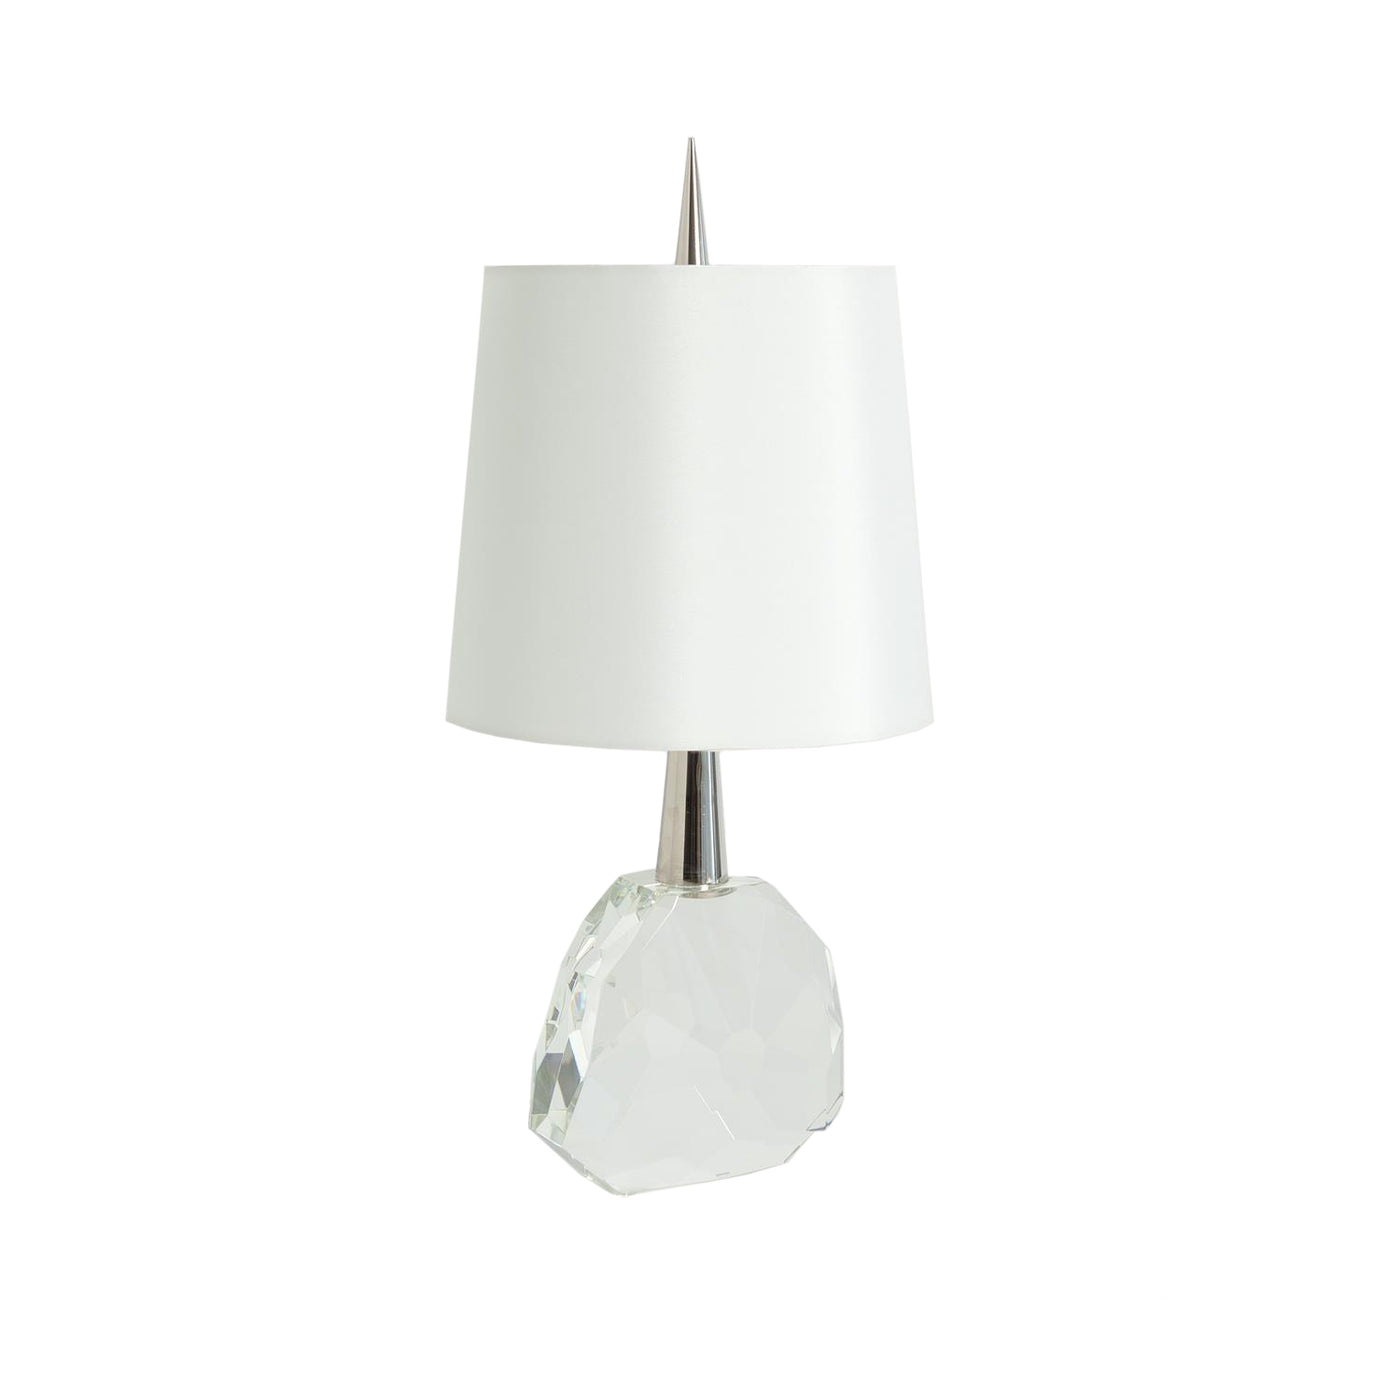 global views gem table lamp nickel clear crystal stone